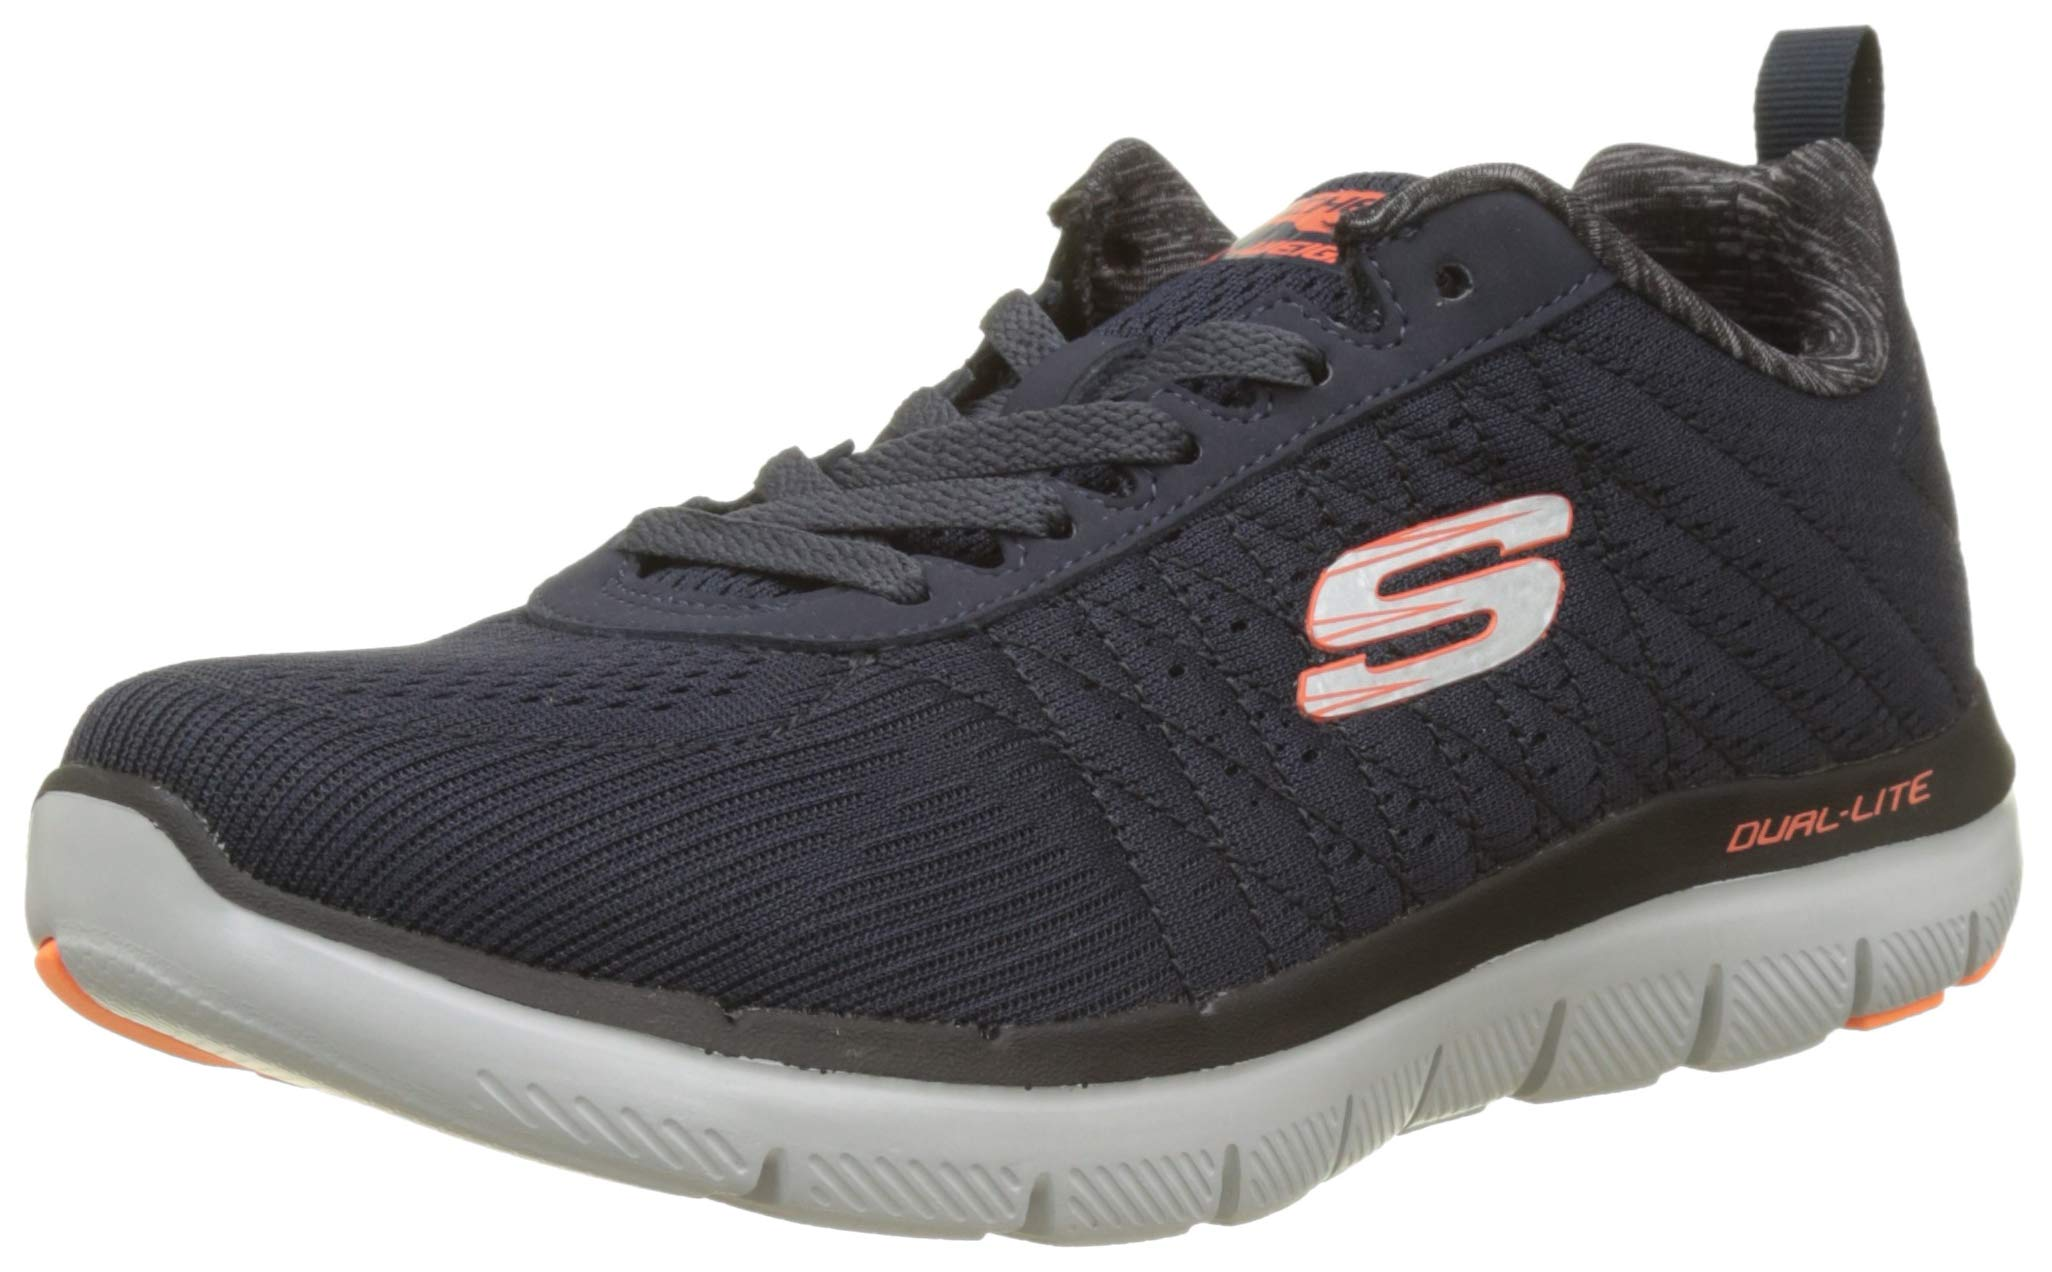 0 Flex Skechers 2 Navy39 Running HommeBleudark Eu HappsChaussures De Advantage the tCrxdhsQ